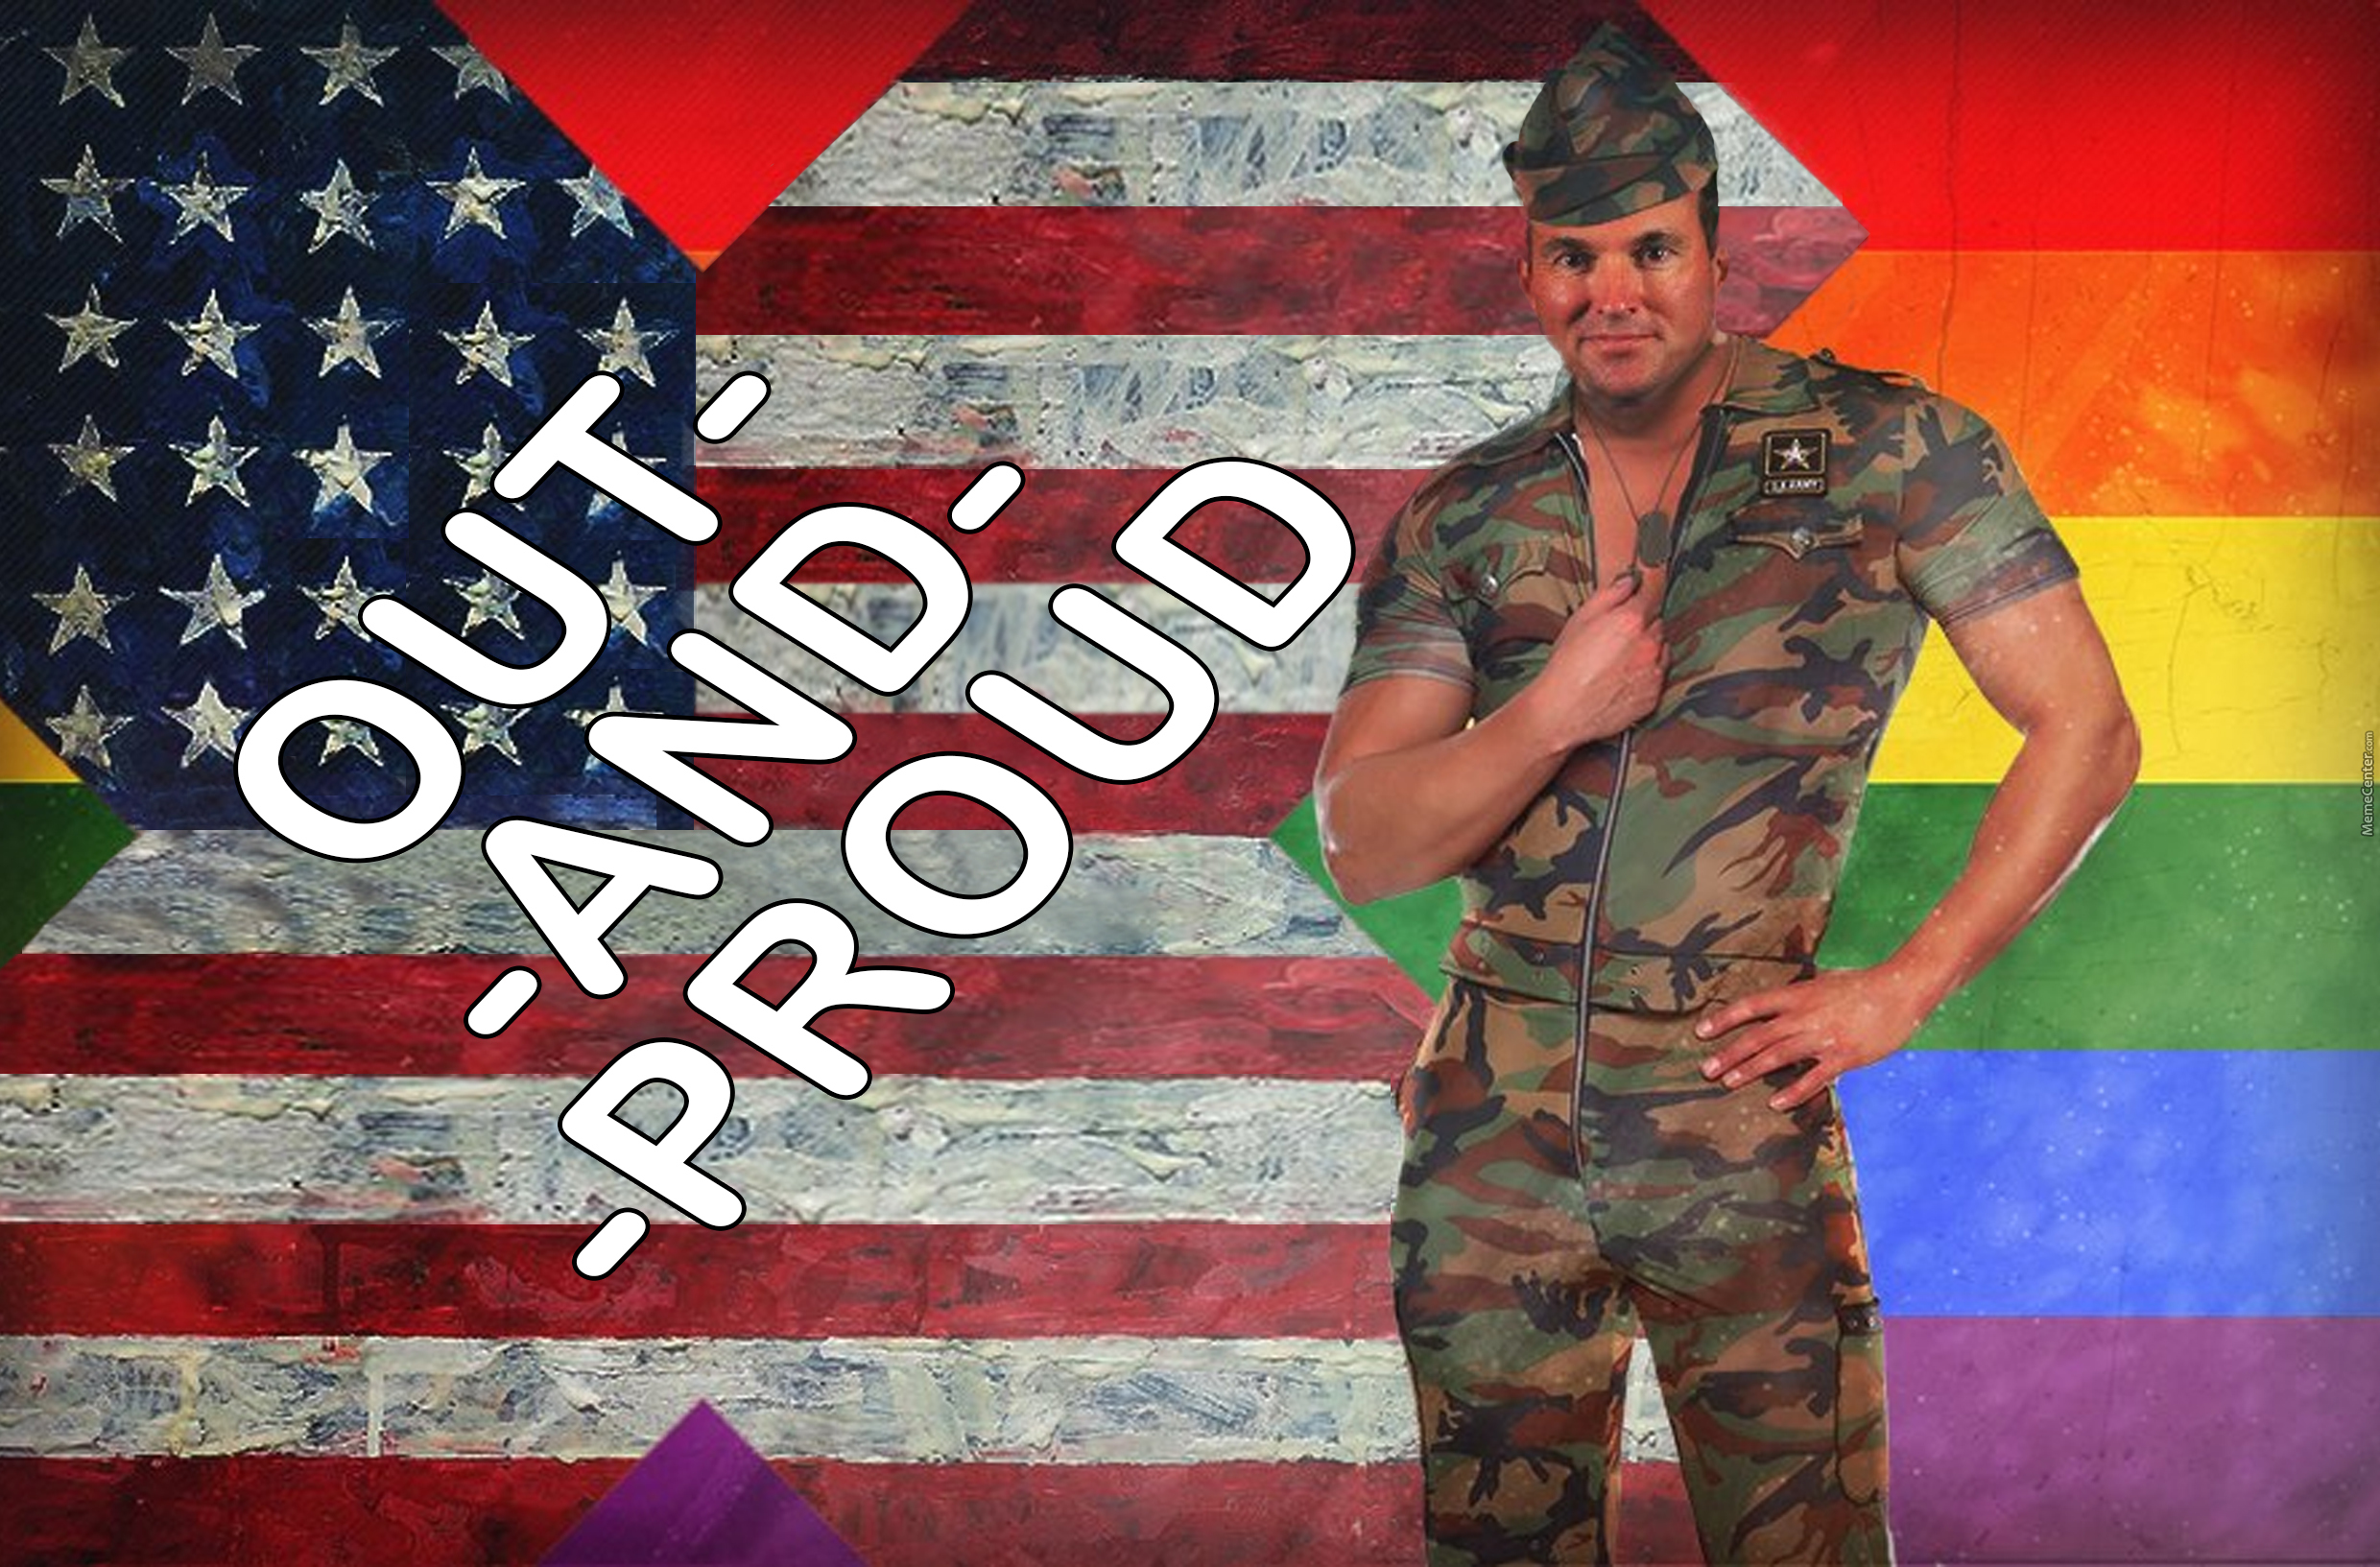 us army and the homosexual propensity essay 2017 (october term) united states v williams, 77 mj 459 (the use of charged conduct as propensity evidence under mre 413 for other charged conduct in the same case prejudices an accused's constitutional right to be presumed innocent until proven guilty, regardless of the forum, the number of victims, or whether the events are connected an accompanying propensity instruction is likewise.